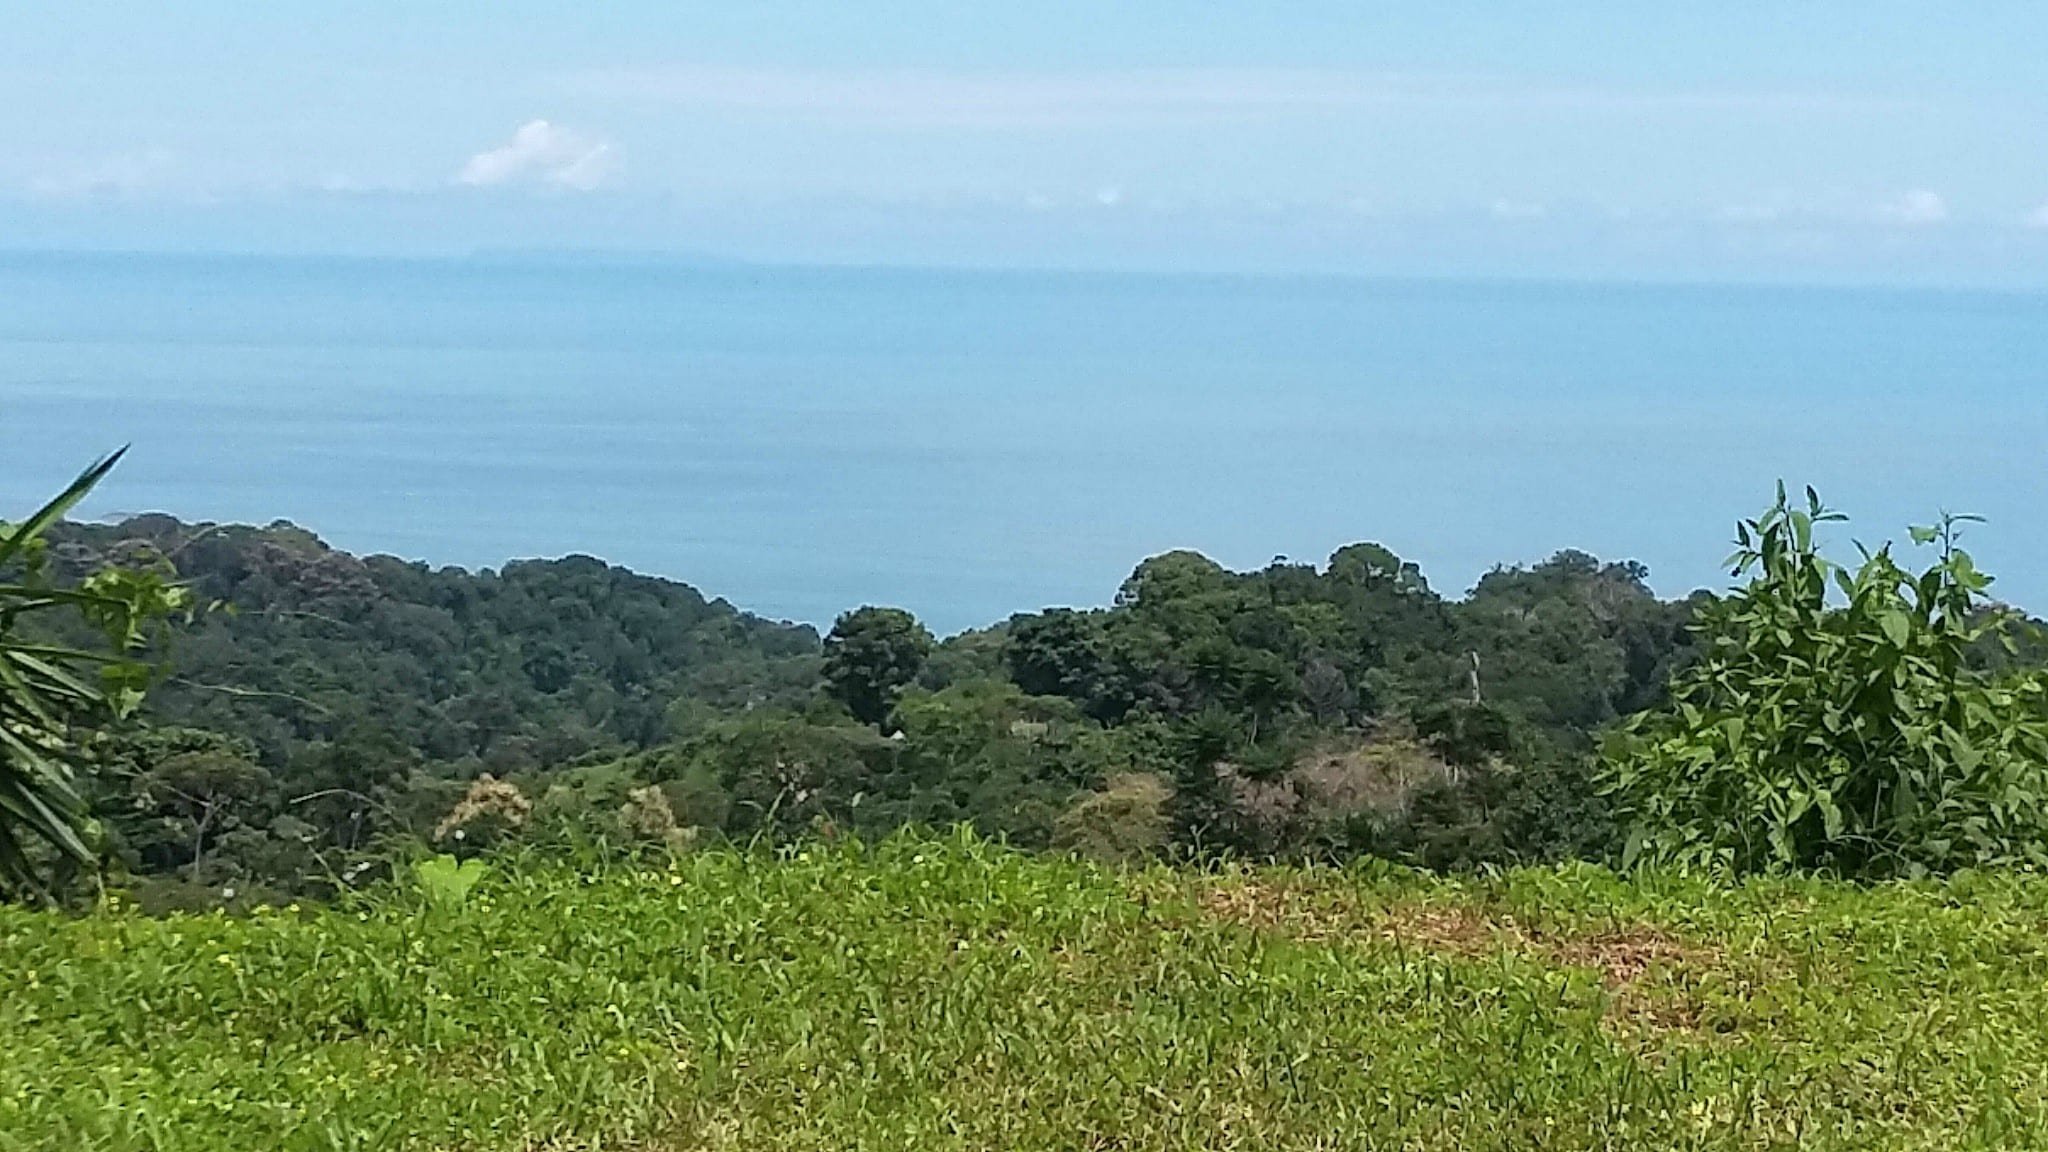 3 ACRES - Ocean View Lot In Nice Jungle Setting With Good Access And Great Price!!!